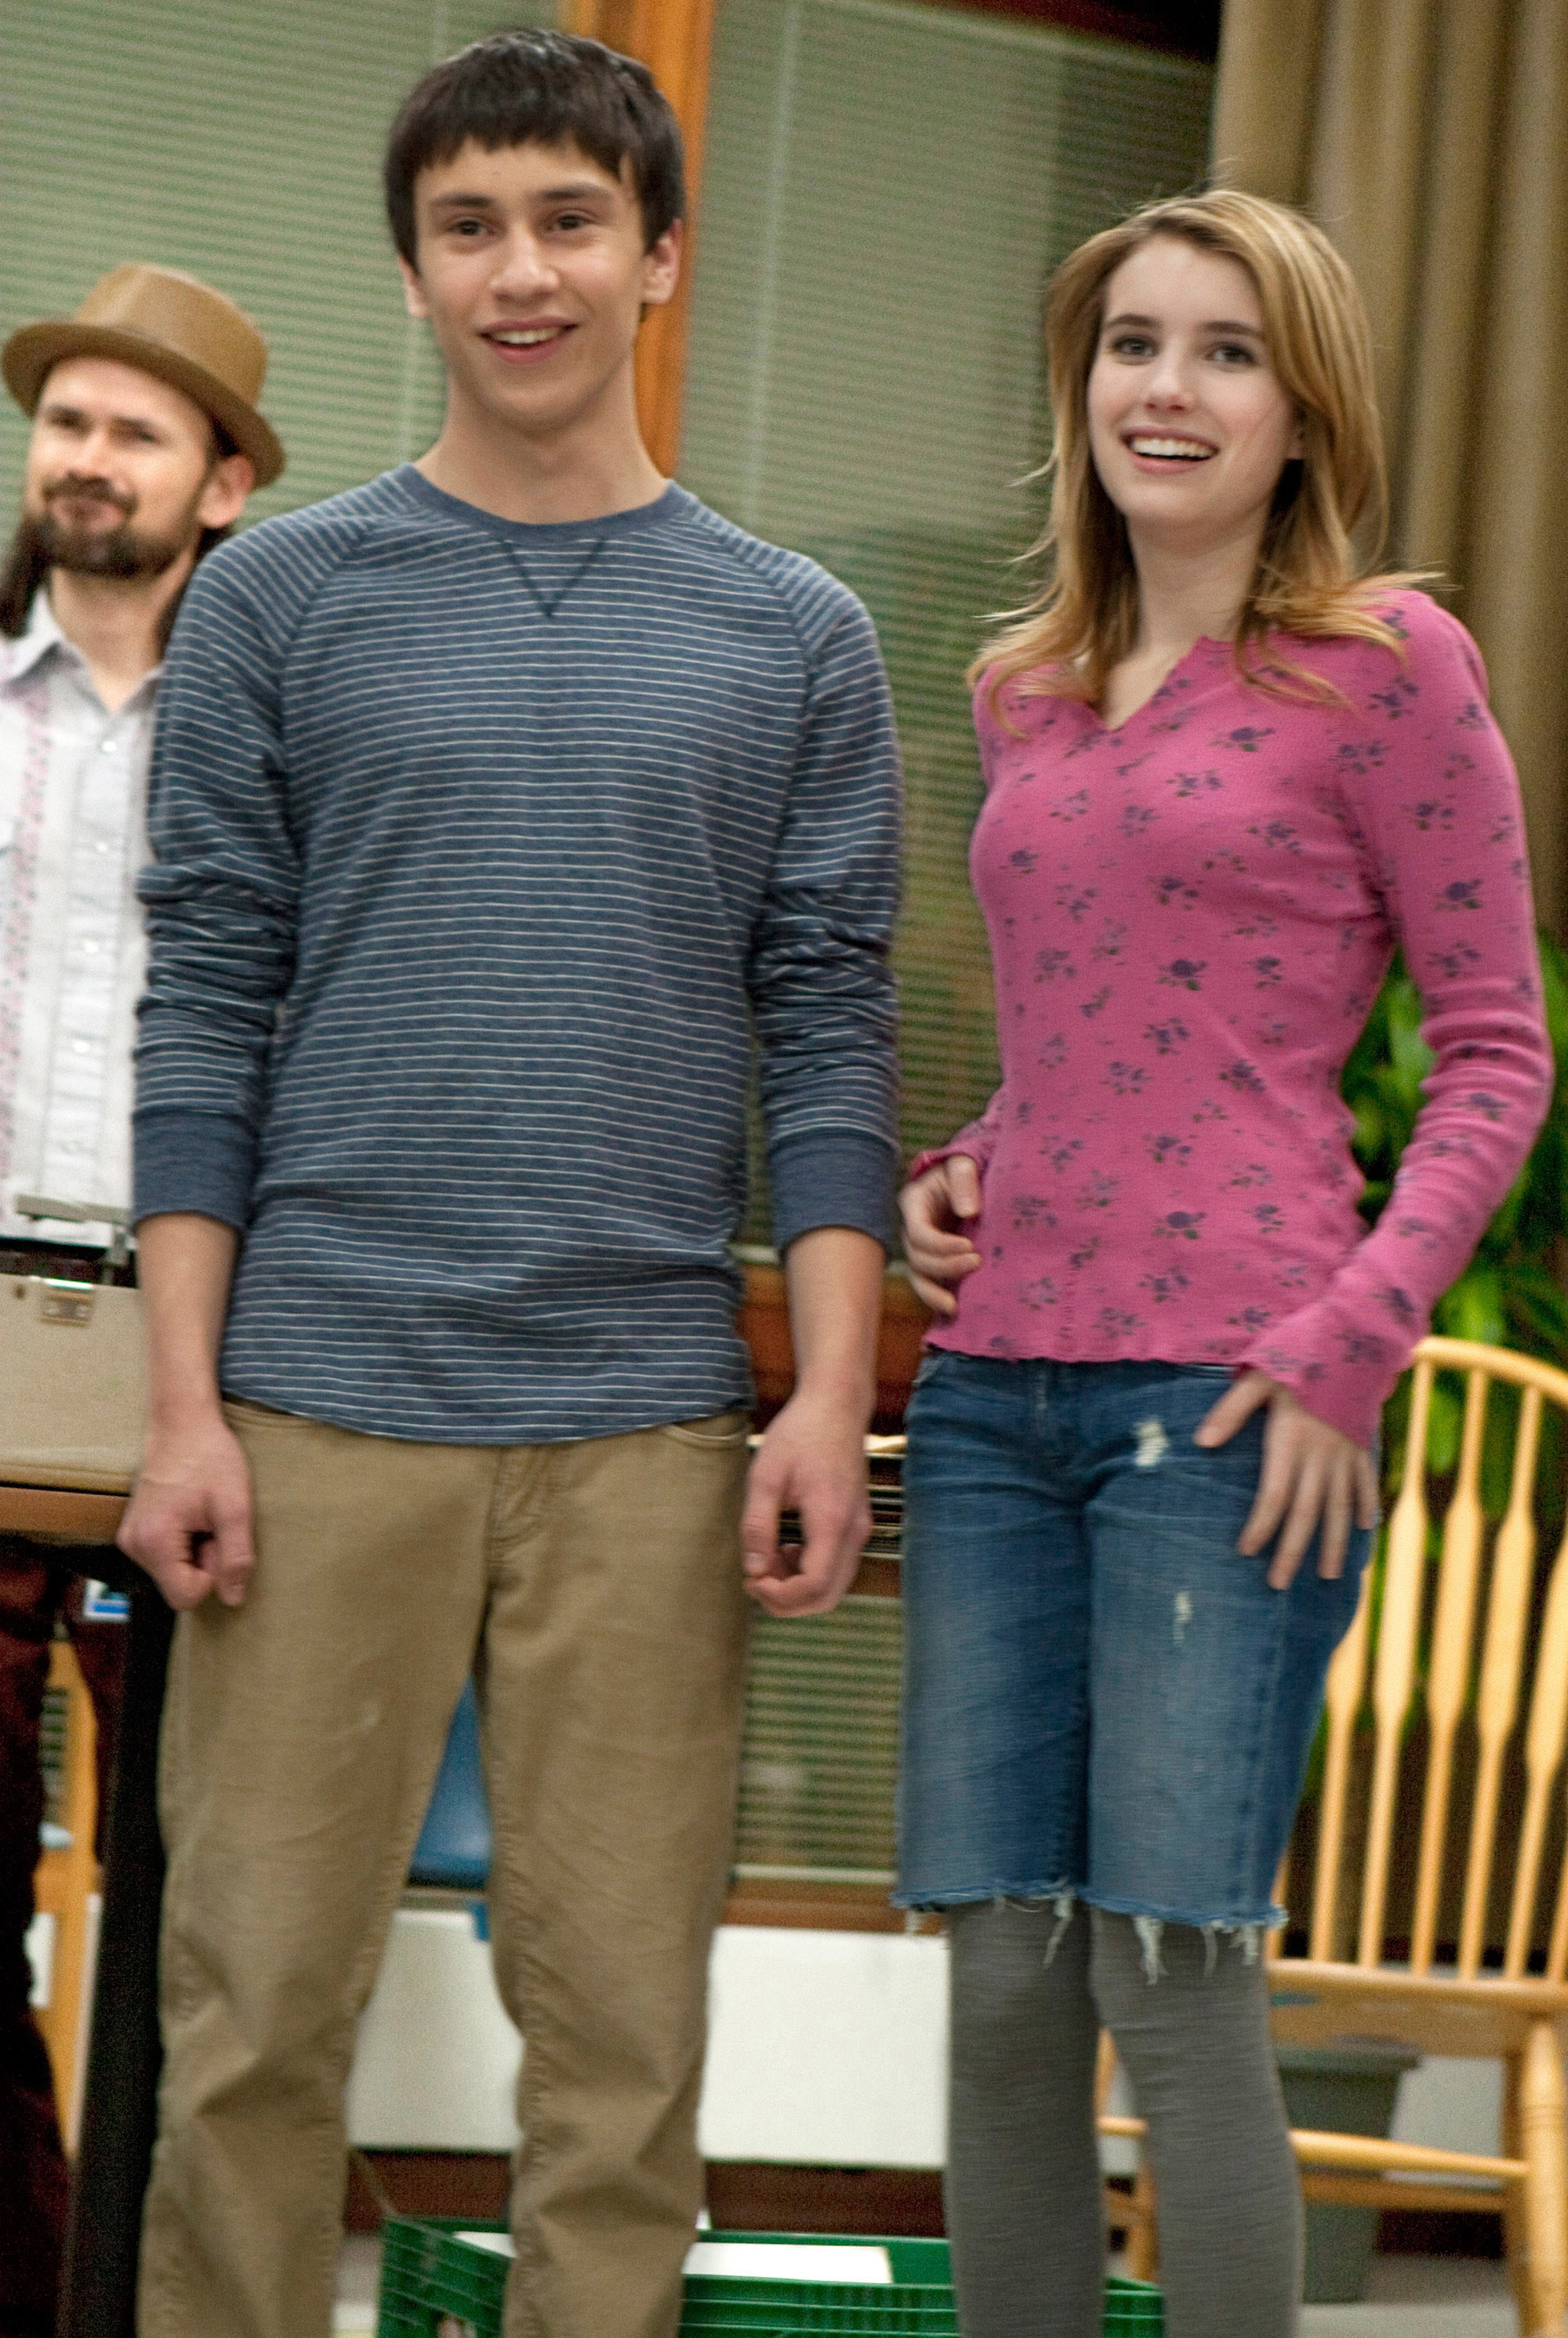 Craig and Noelle in the movie